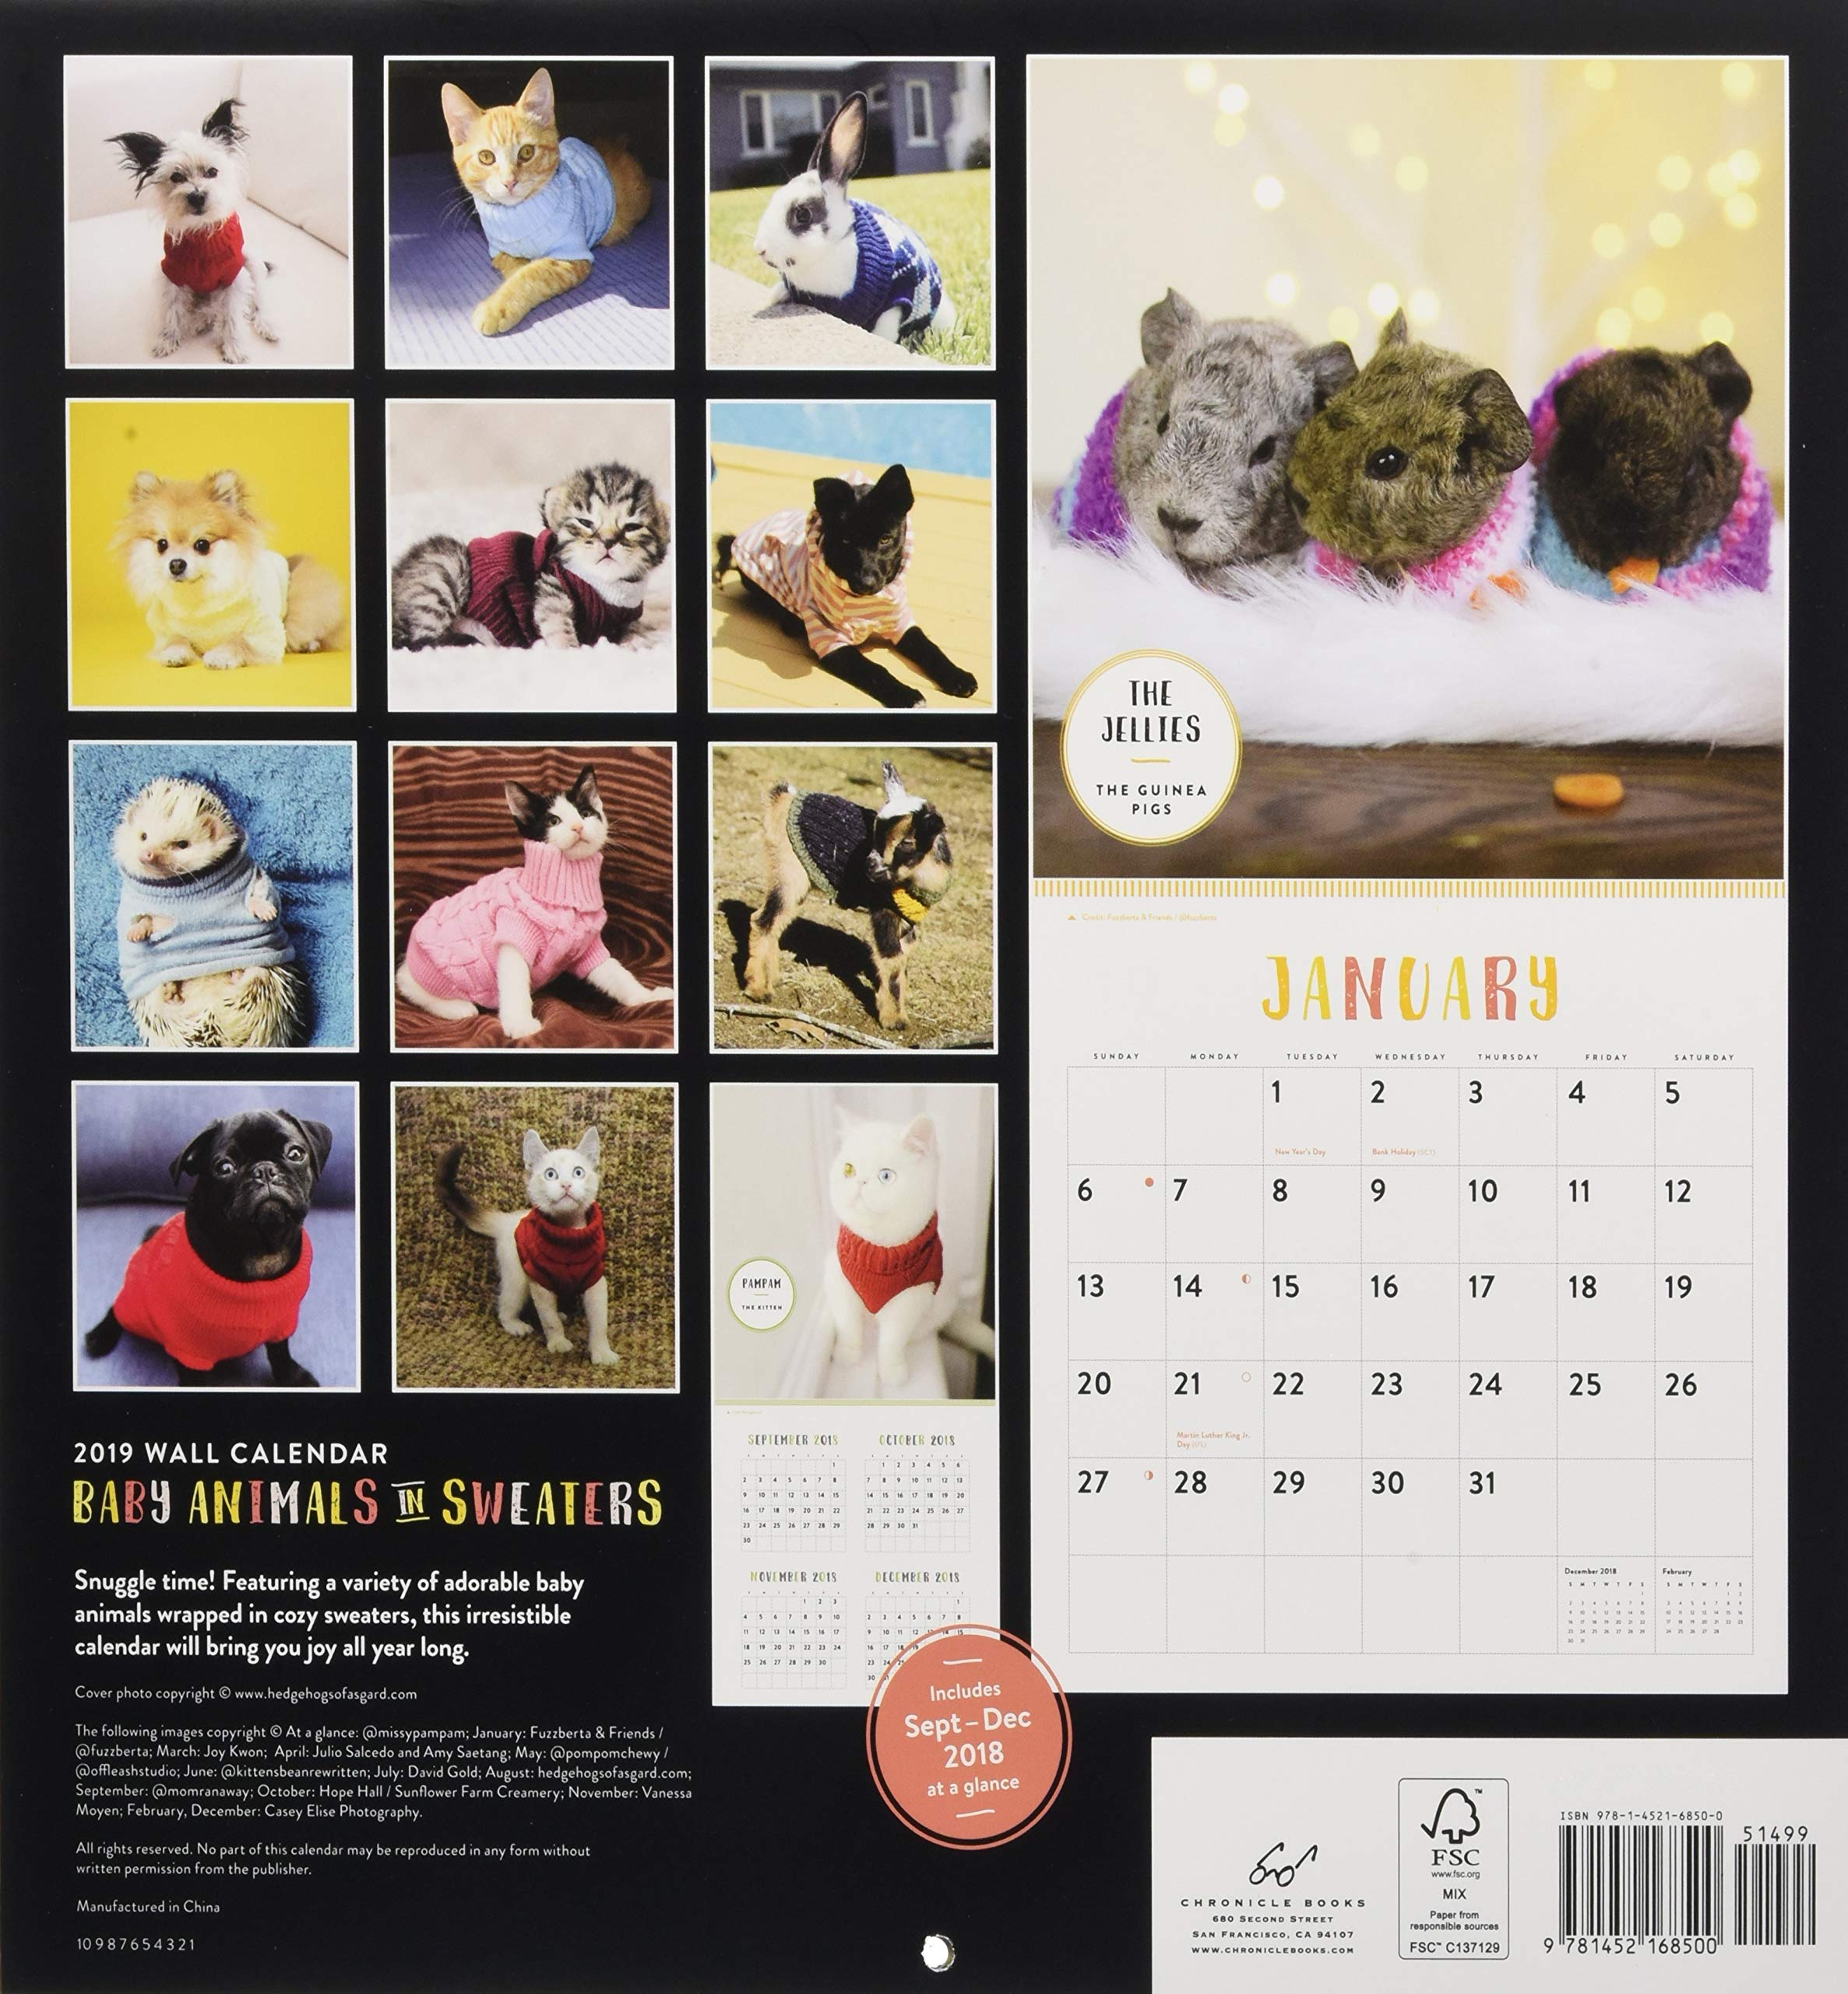 Amazon.com Baby Animals in Sweaters 2019 Wall Calendar